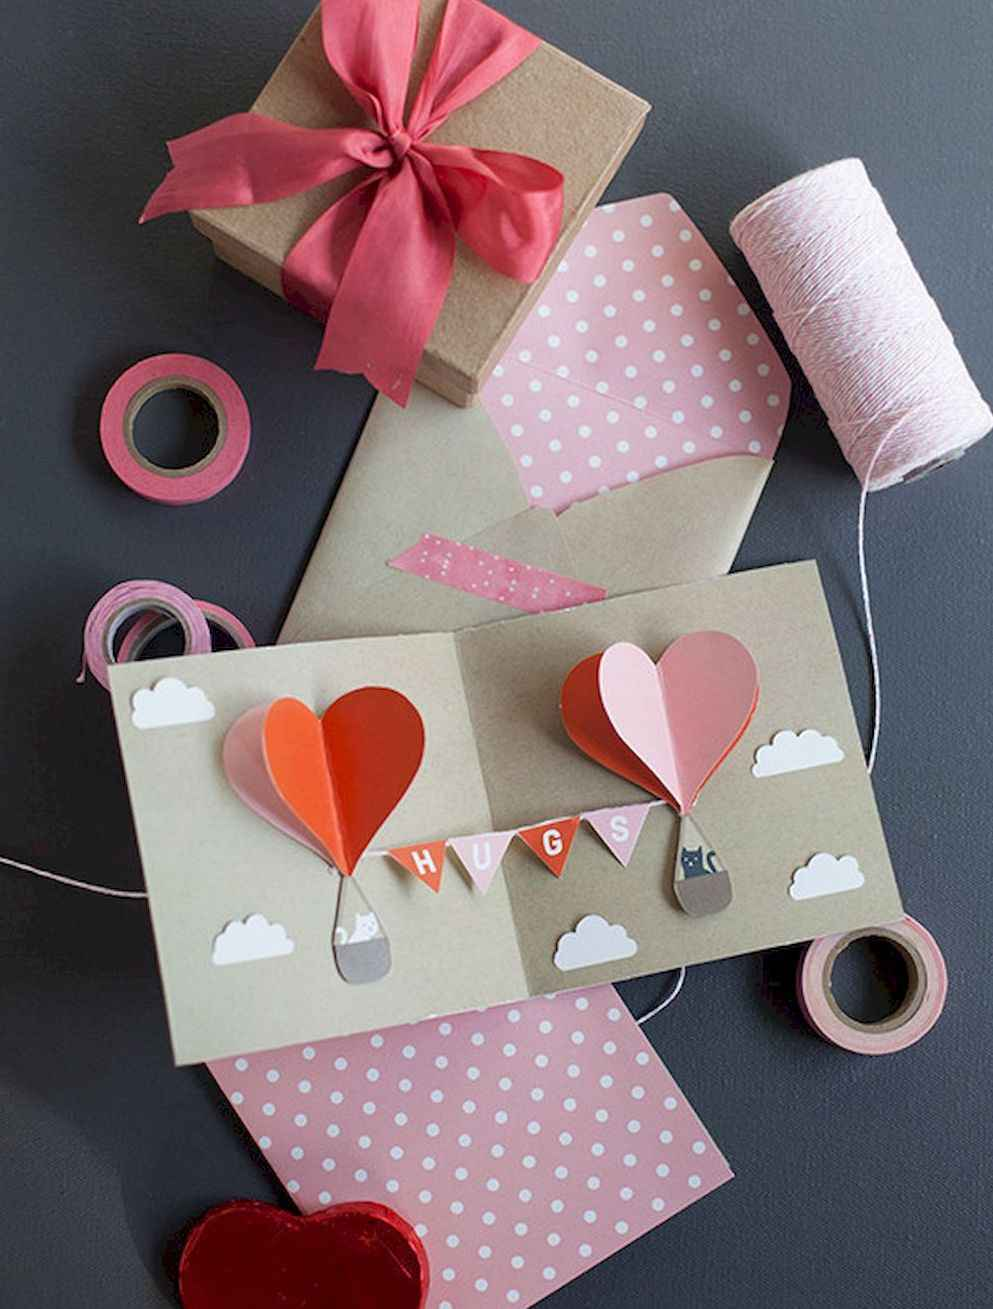 60 Romantic Valentines Crafts Ideas On A Budget (4)